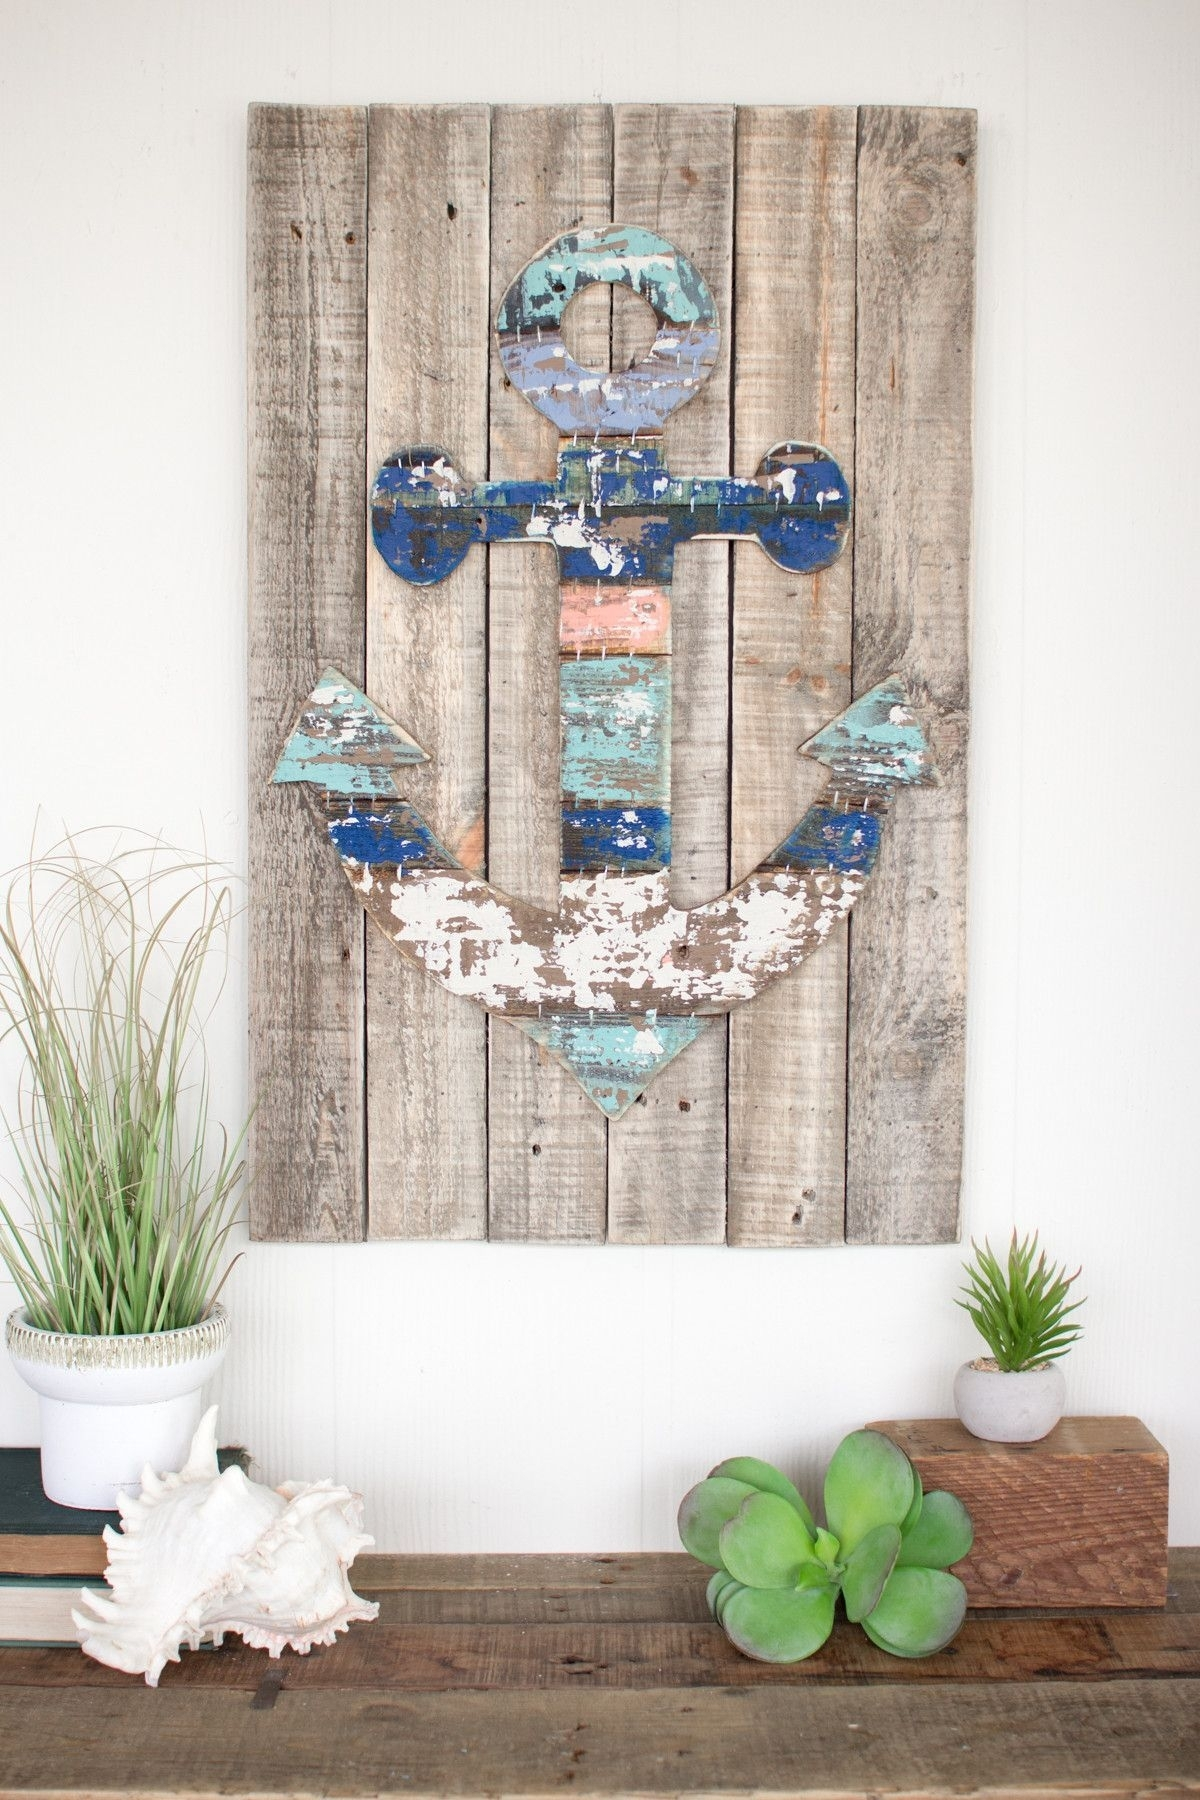 Wooden Anchor Wall Art | Crafts | Pinterest | Anchor Wall Art, Walls with Anchor Wall Art (Image 20 of 20)